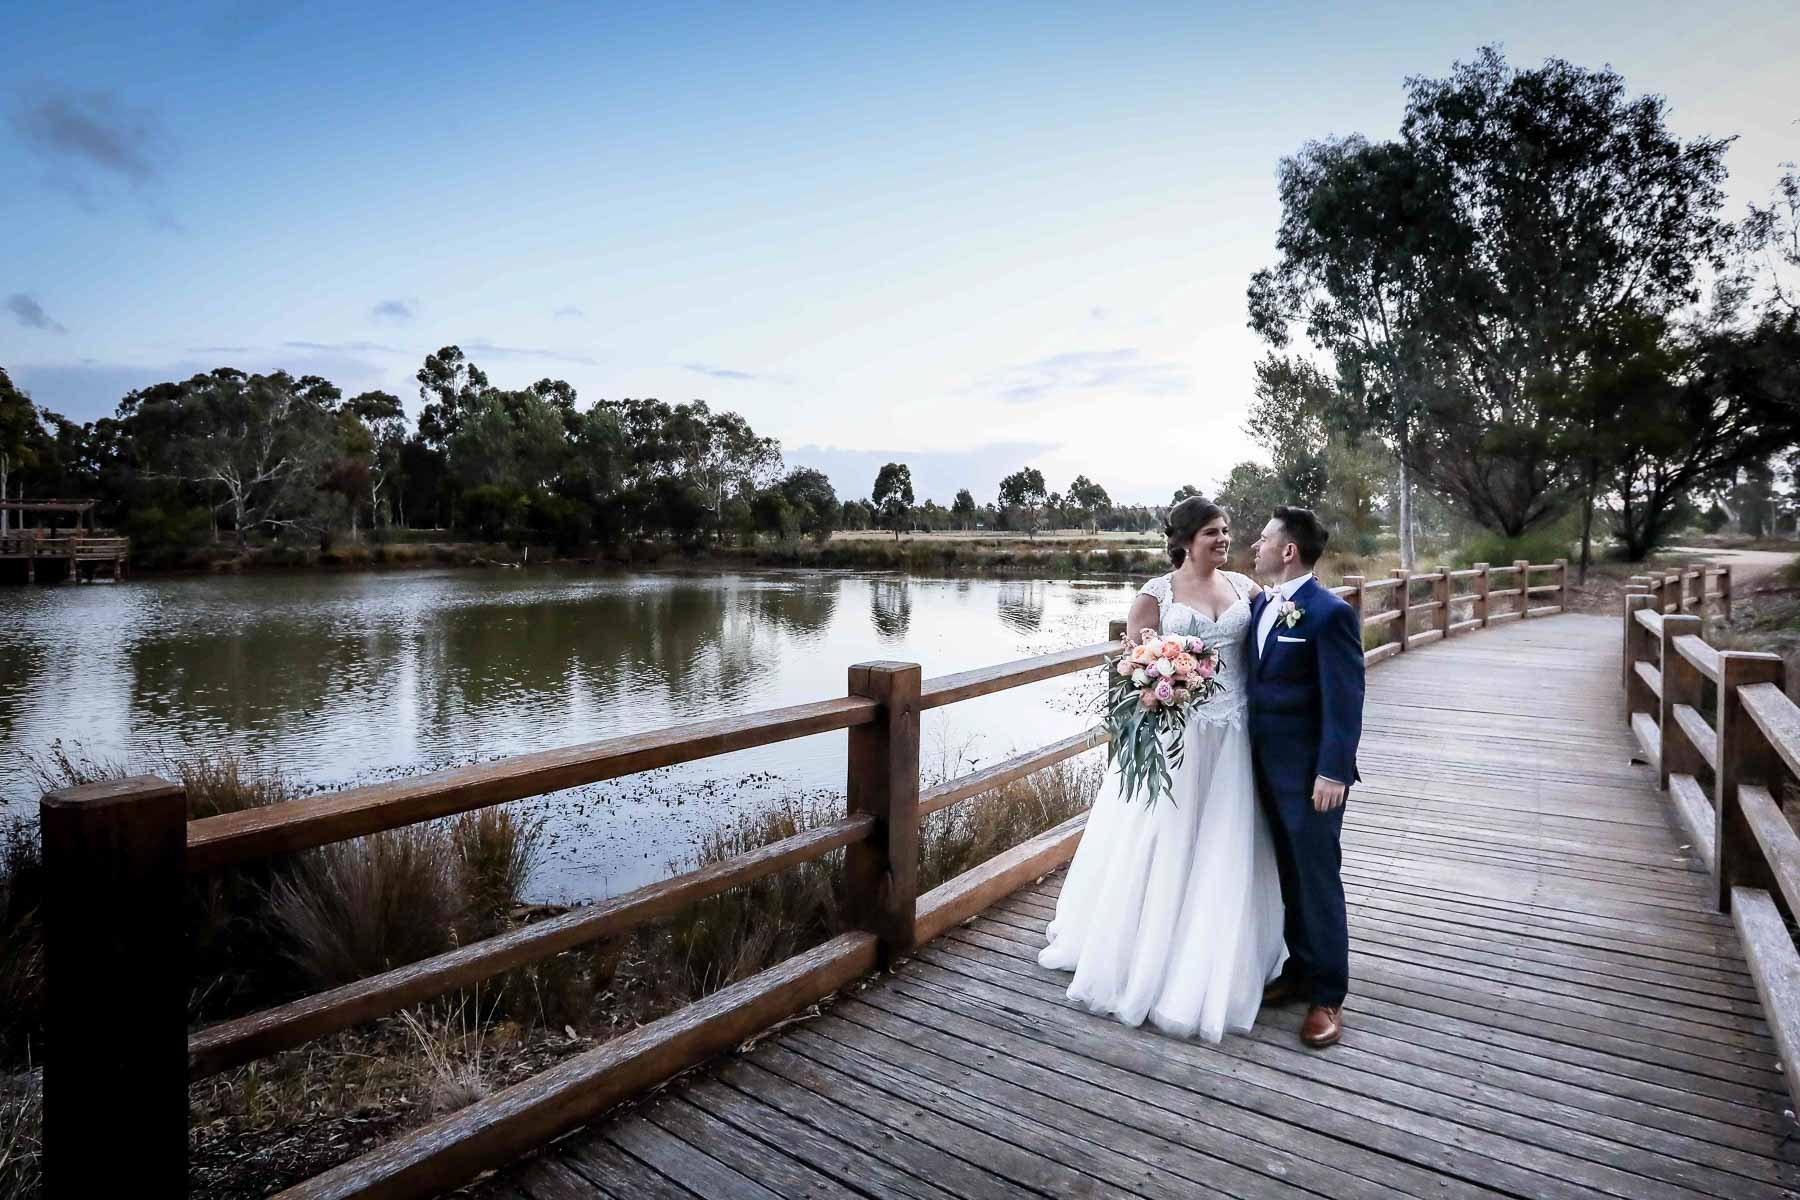 Bride & Groom Wedding Portraits - Karen Brothers Photography Daylesford